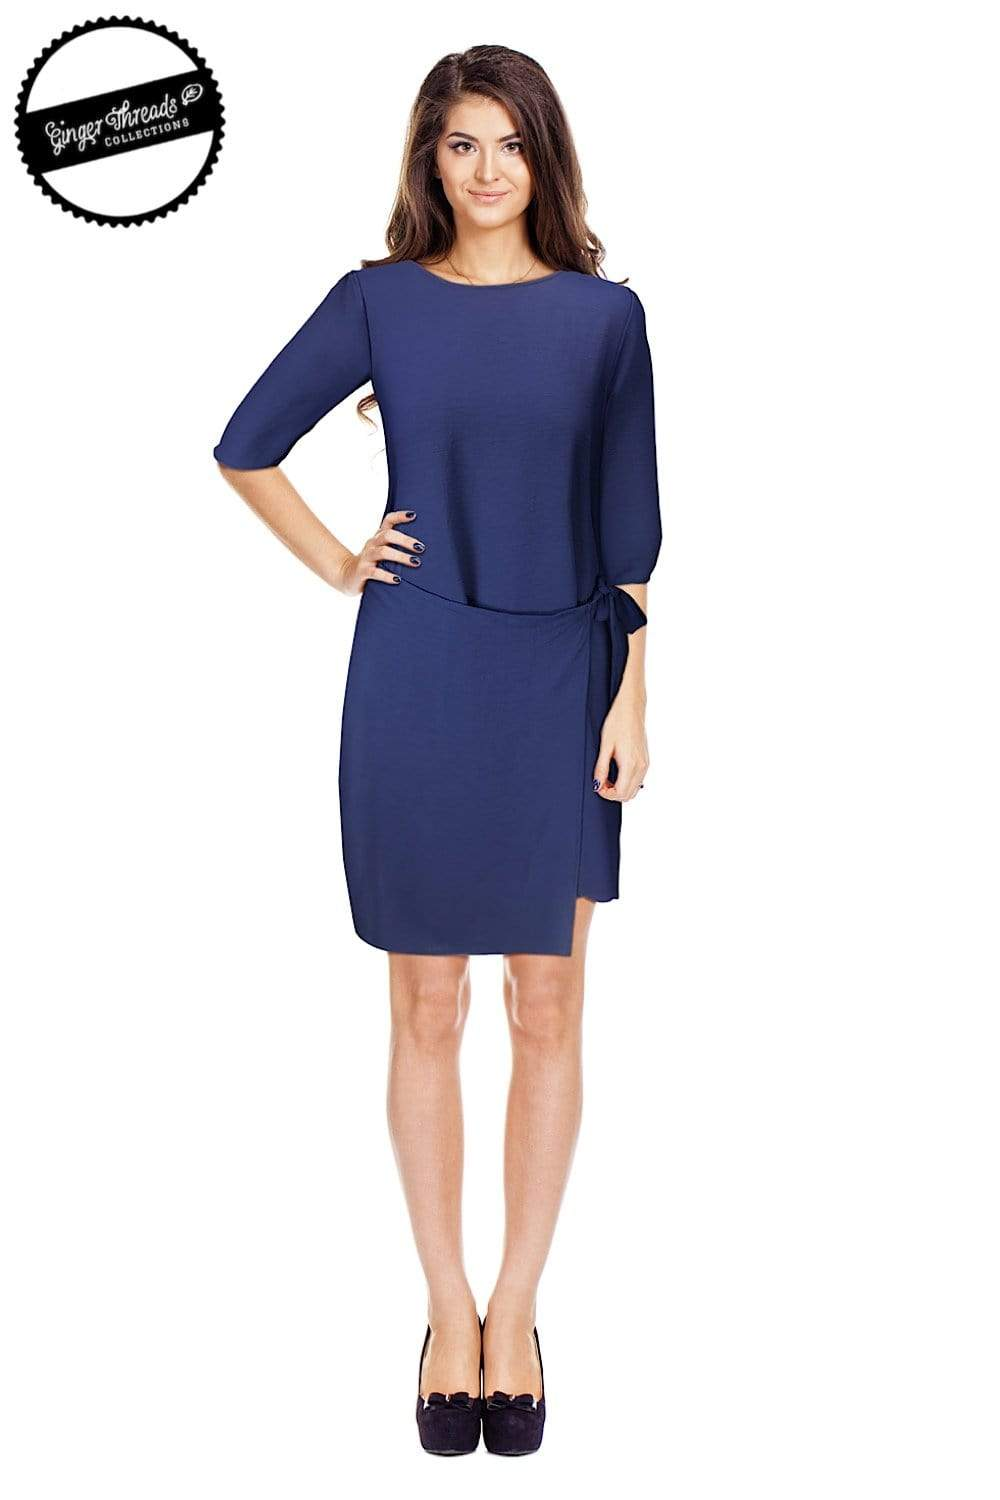 Ginger Threads Collections dress Royal Blue Tie-front dress